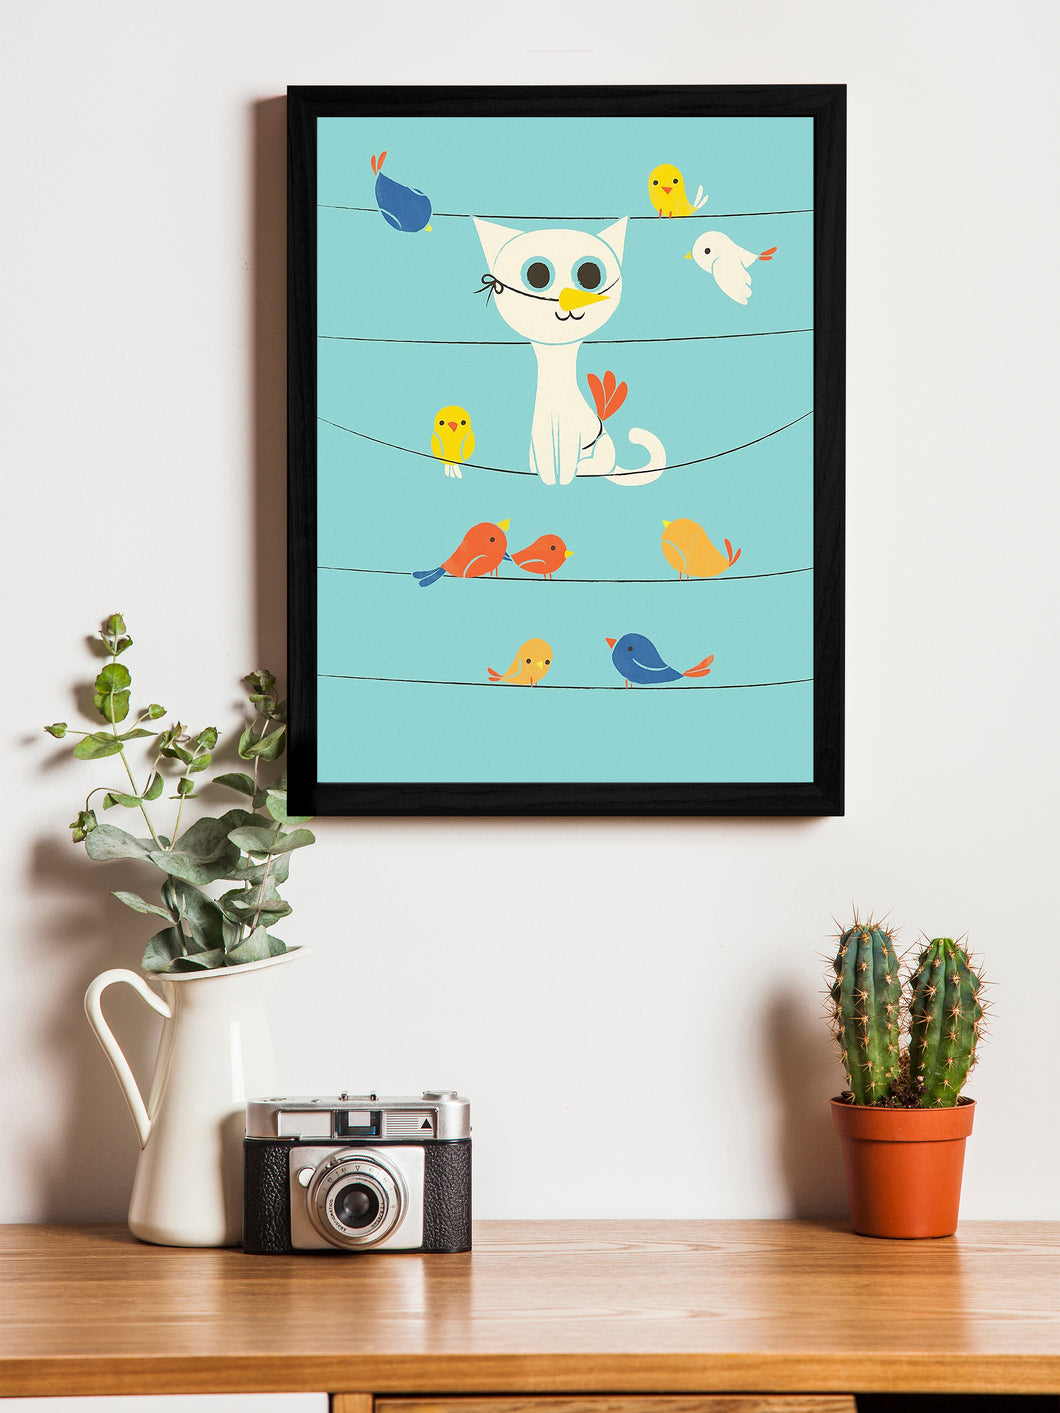 Beautiful Cartoon Cat With Birds Theme Framed Art Print, For Wall Decor Size - 13.5 x 17.5 Inch